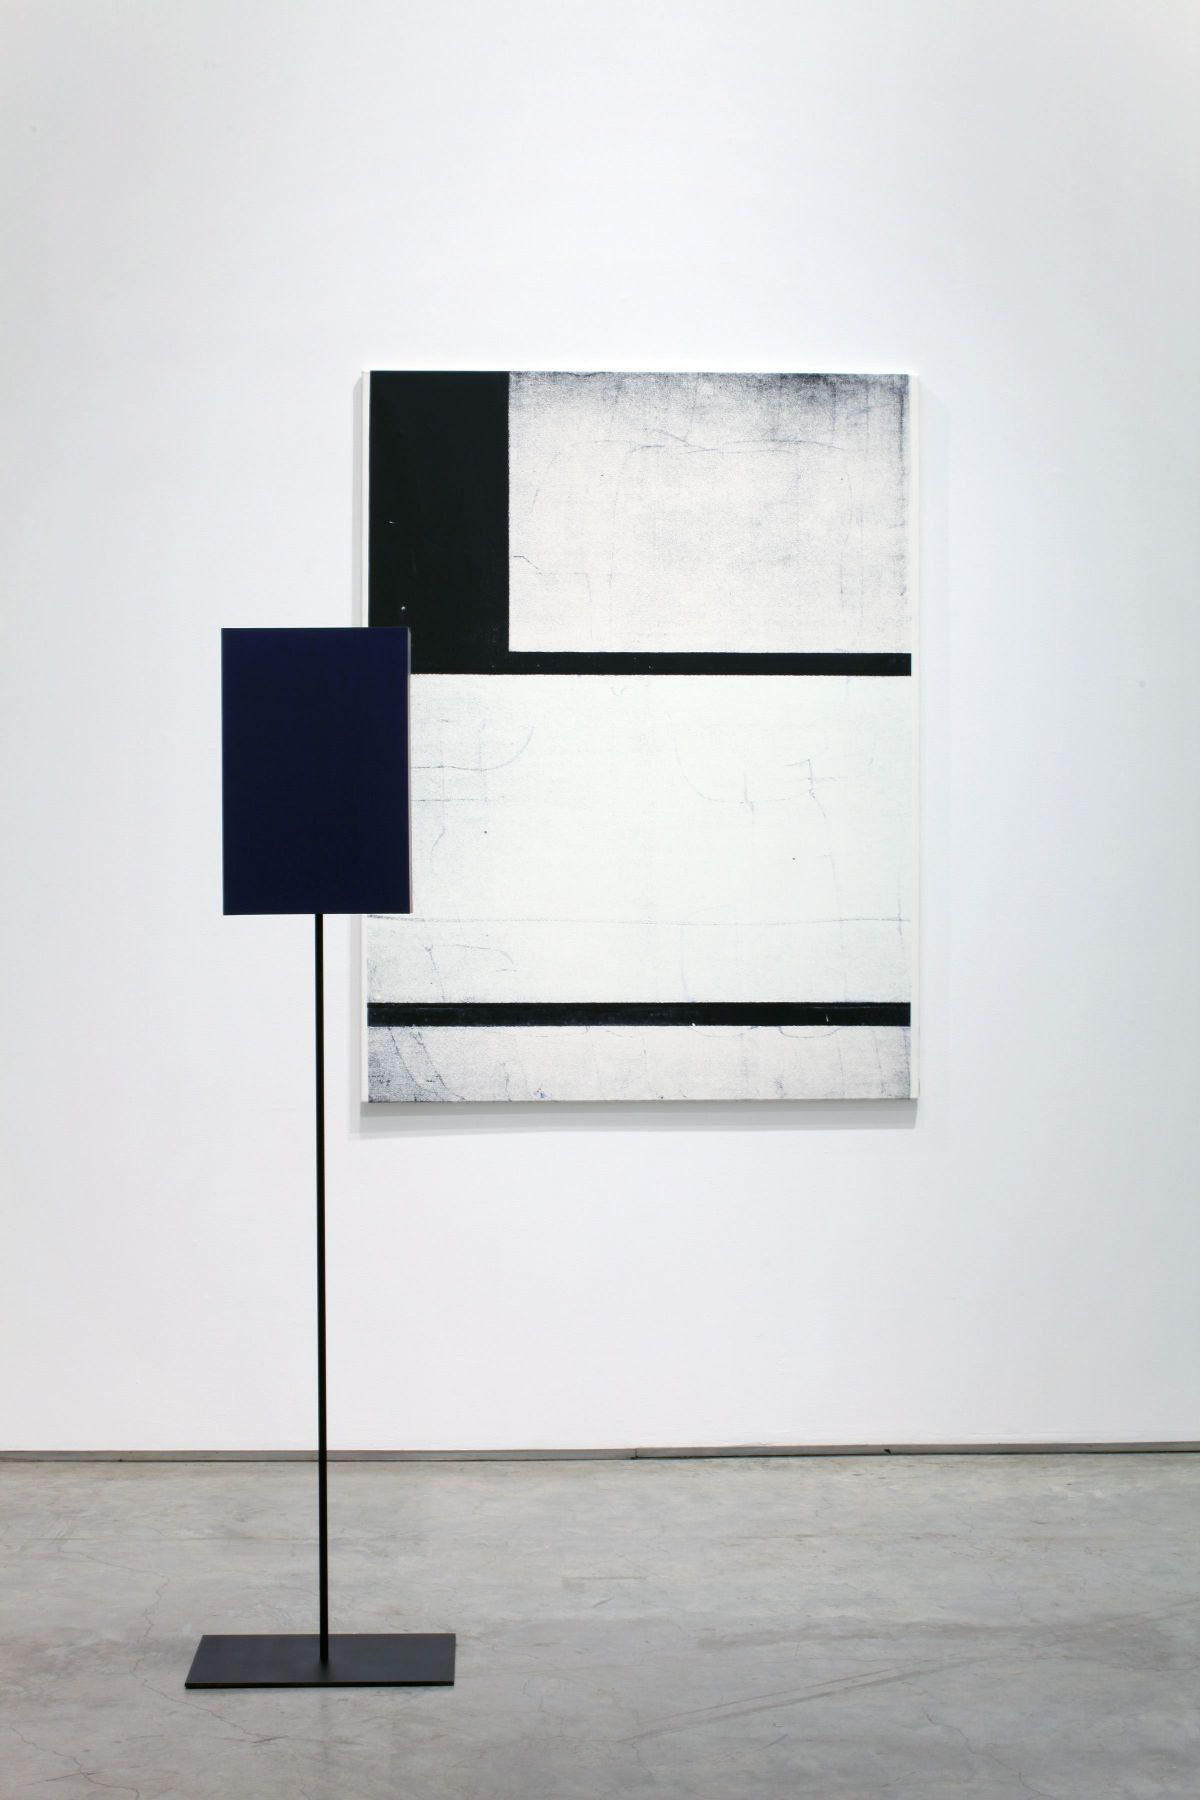 installation by melissa gordon with white and black grid painting and blue rectangular sculpture